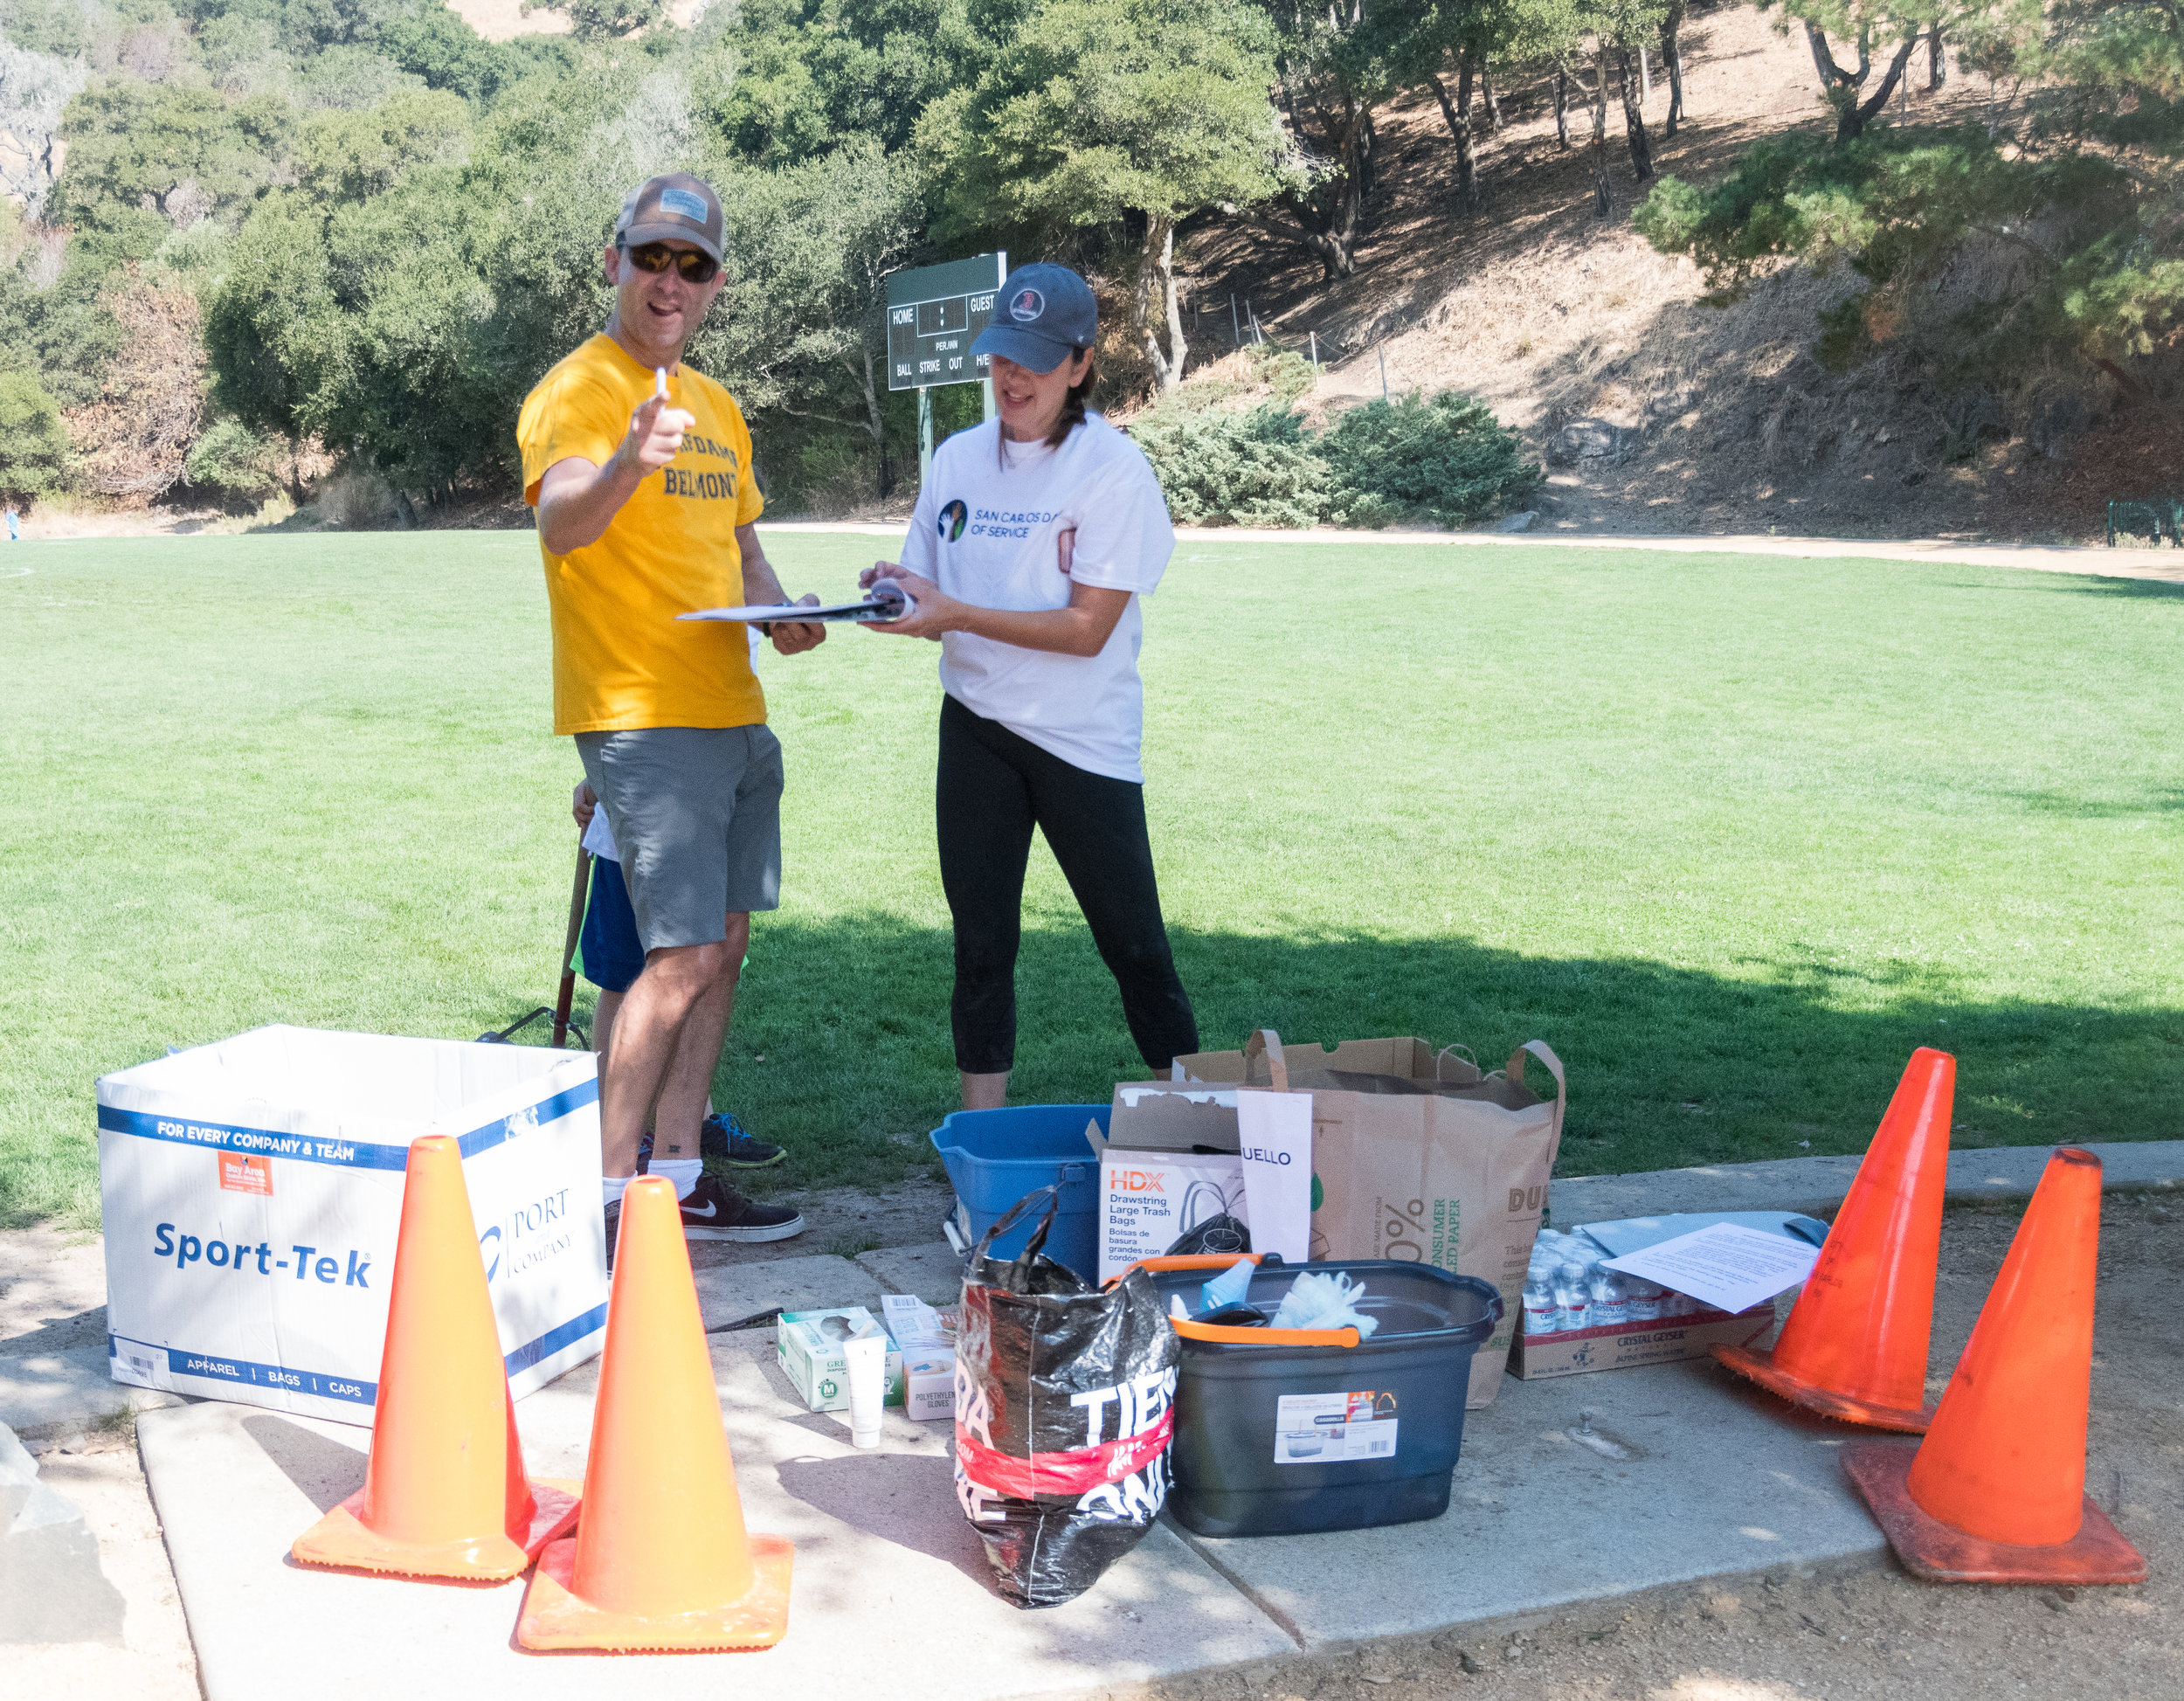 Signing waivers at Arguello Park